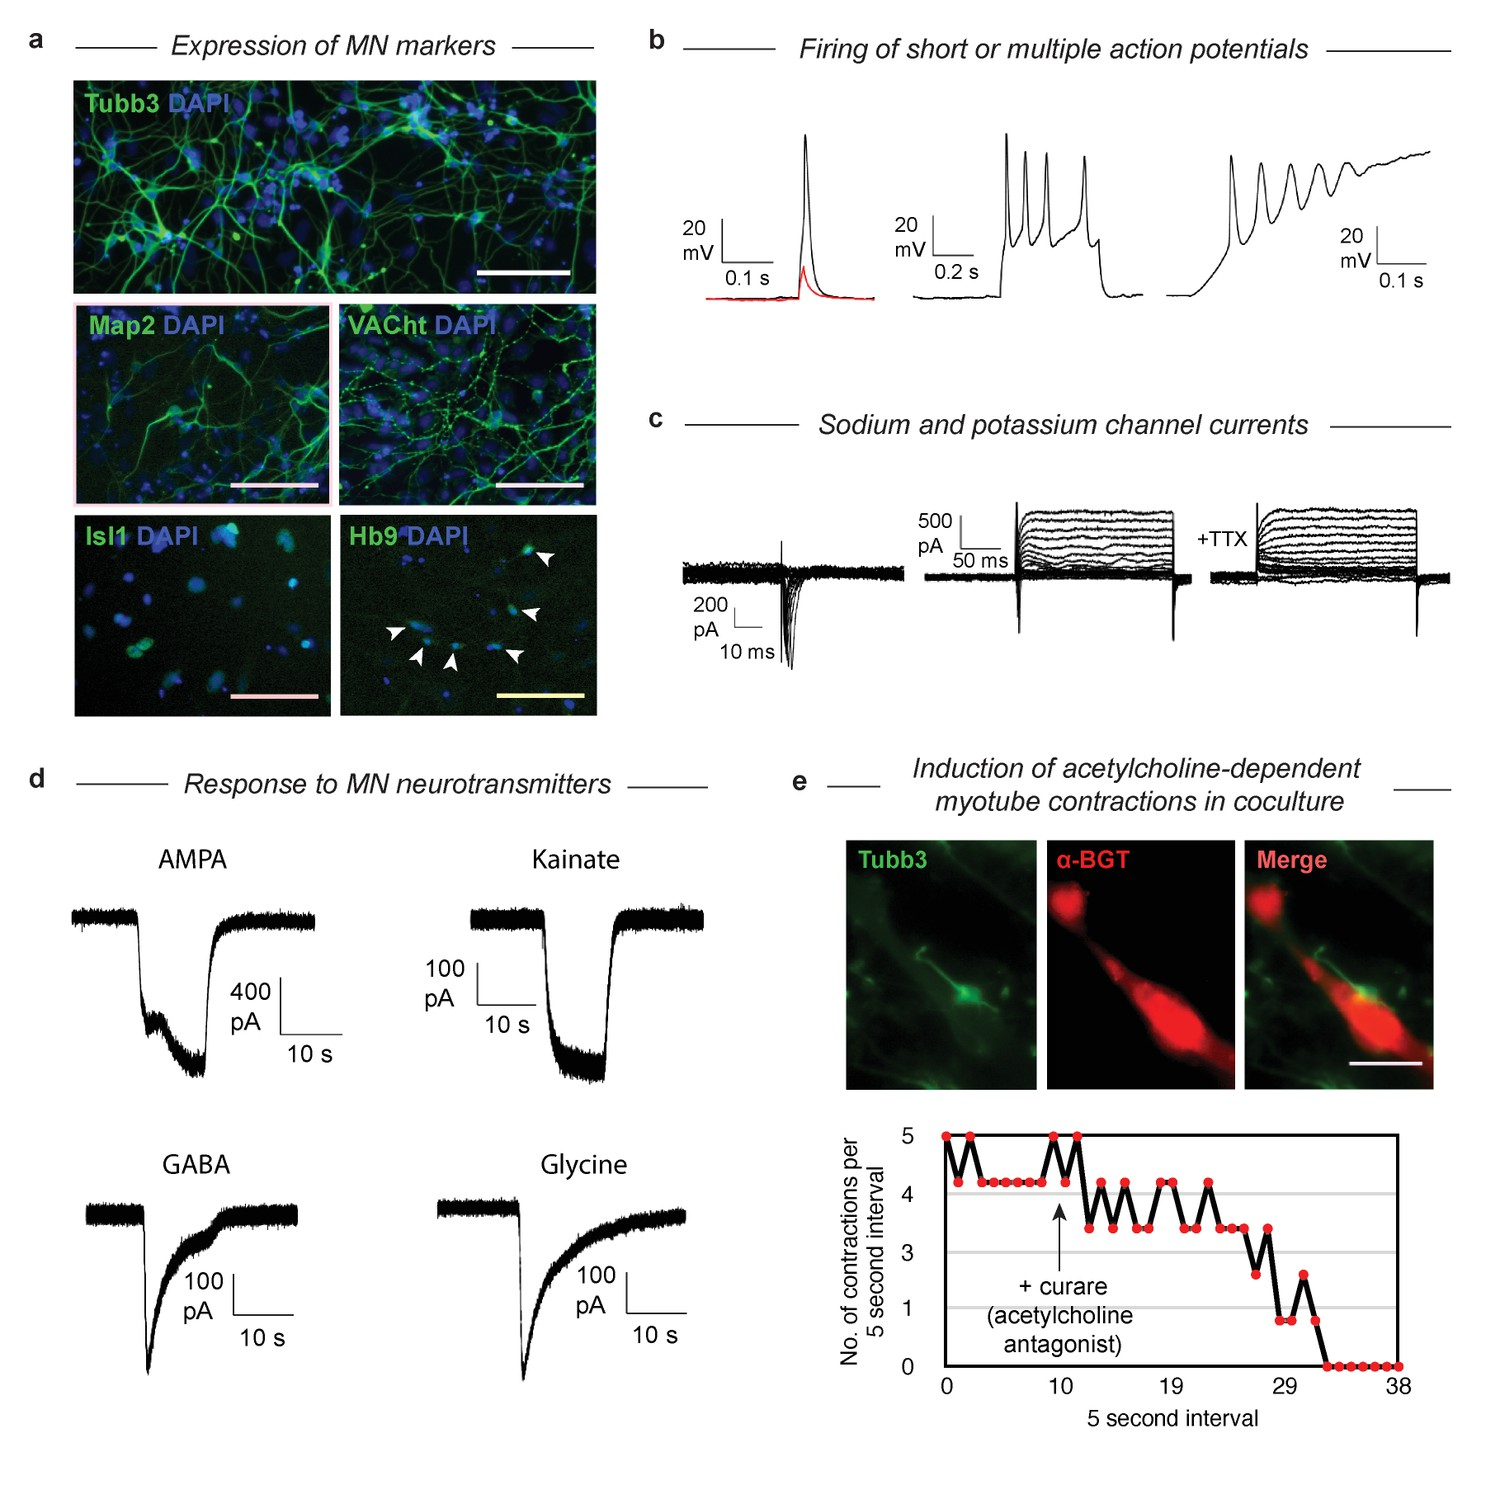 Mouse Embryonic Stem Cells Can Differentiate Via Multiple Paths To Clifford Matrix 1 Wiring Diagram Validation That Dp Become Functional Mns Despite Their Abnormal Differentiation Trajectory